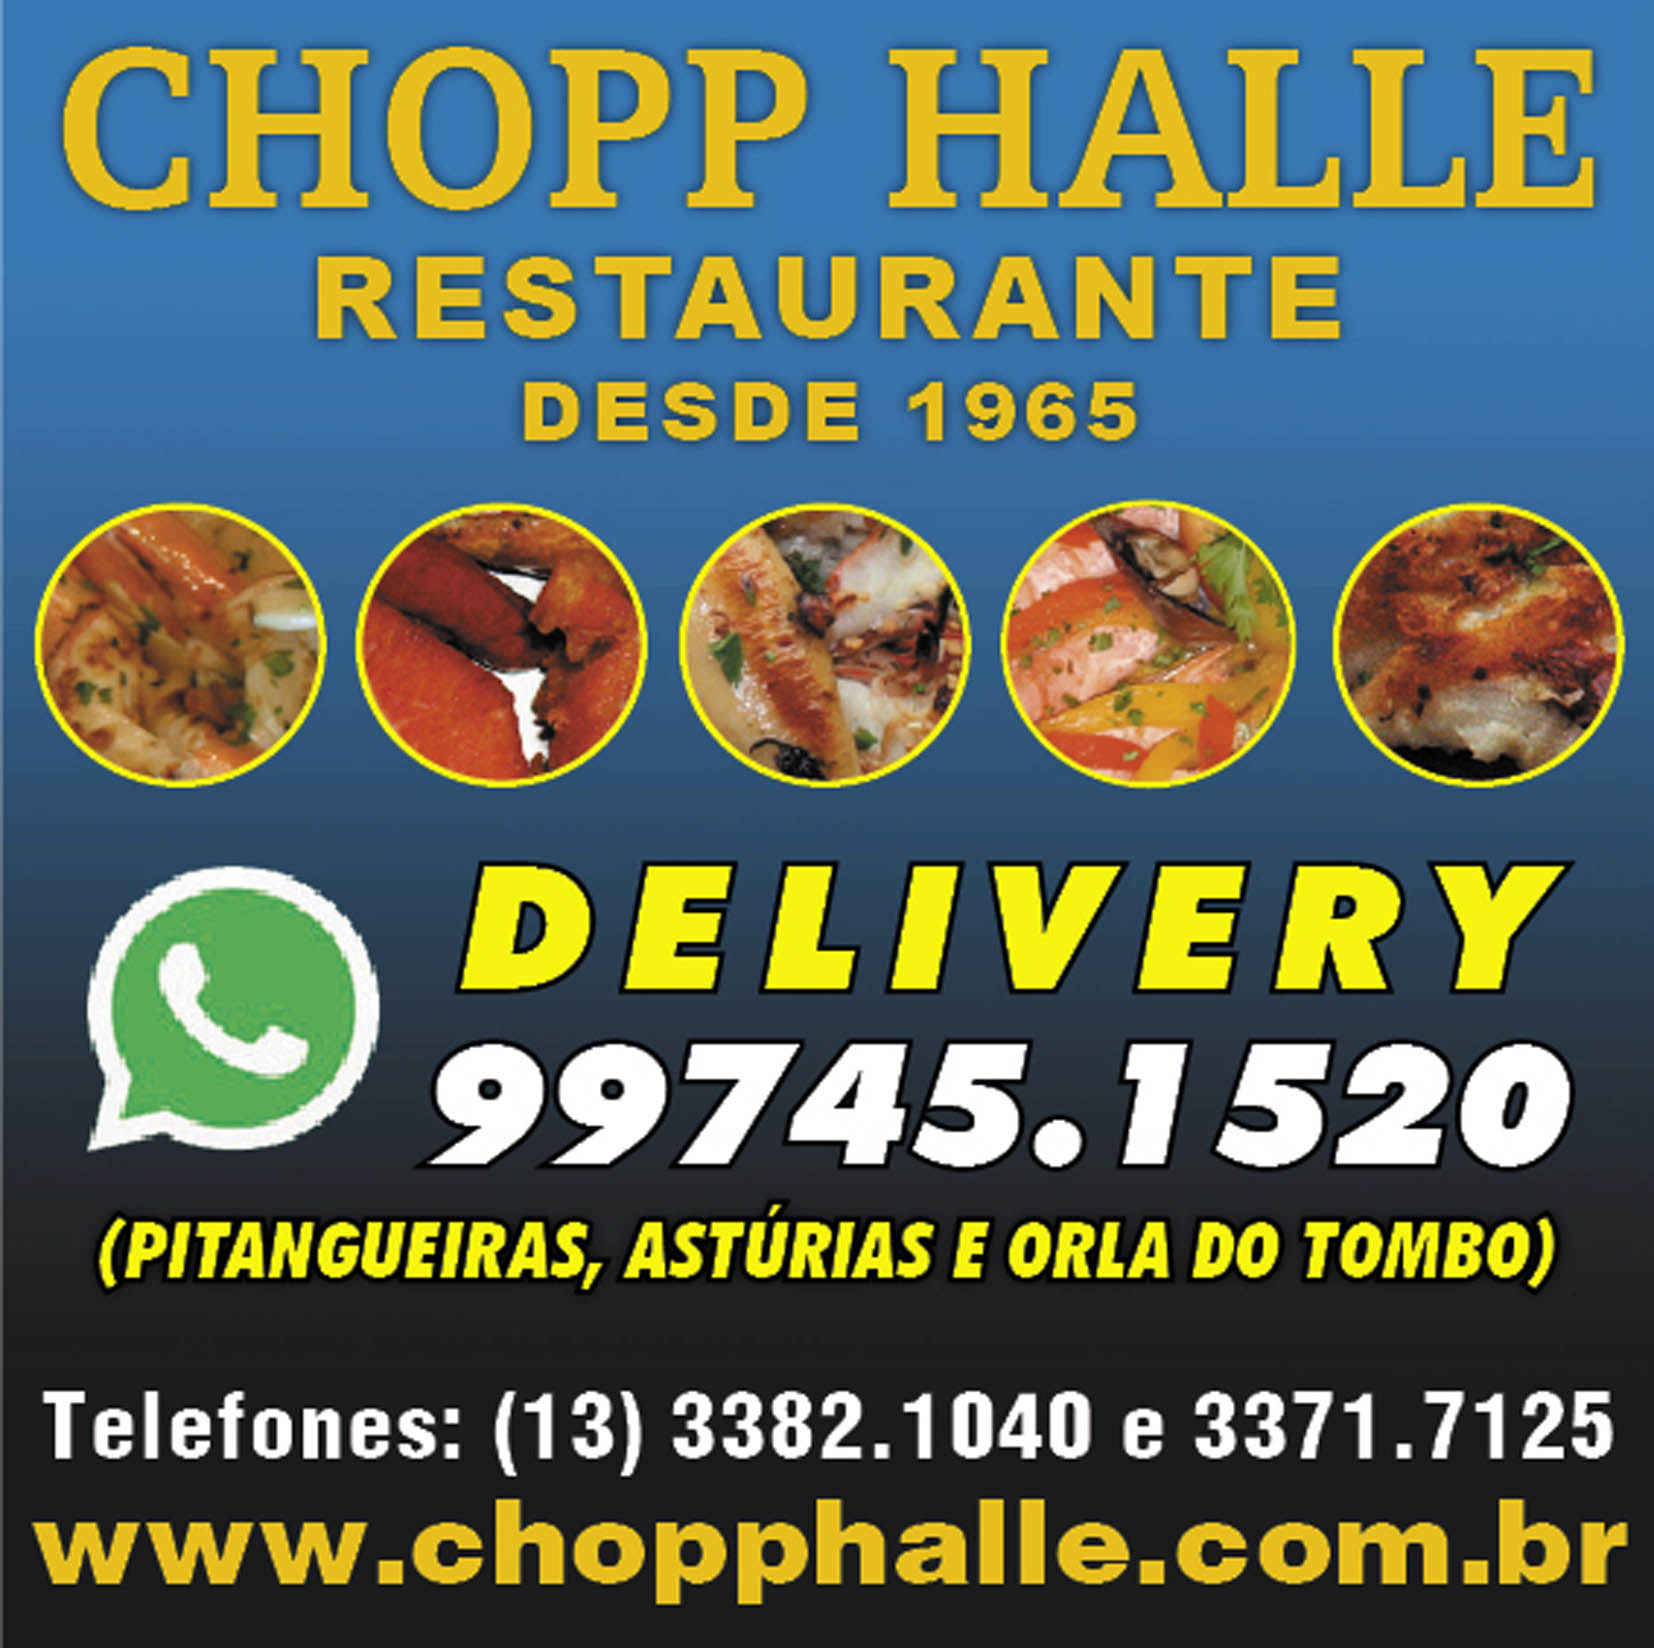 Chopp Halle - Delivery.jpg